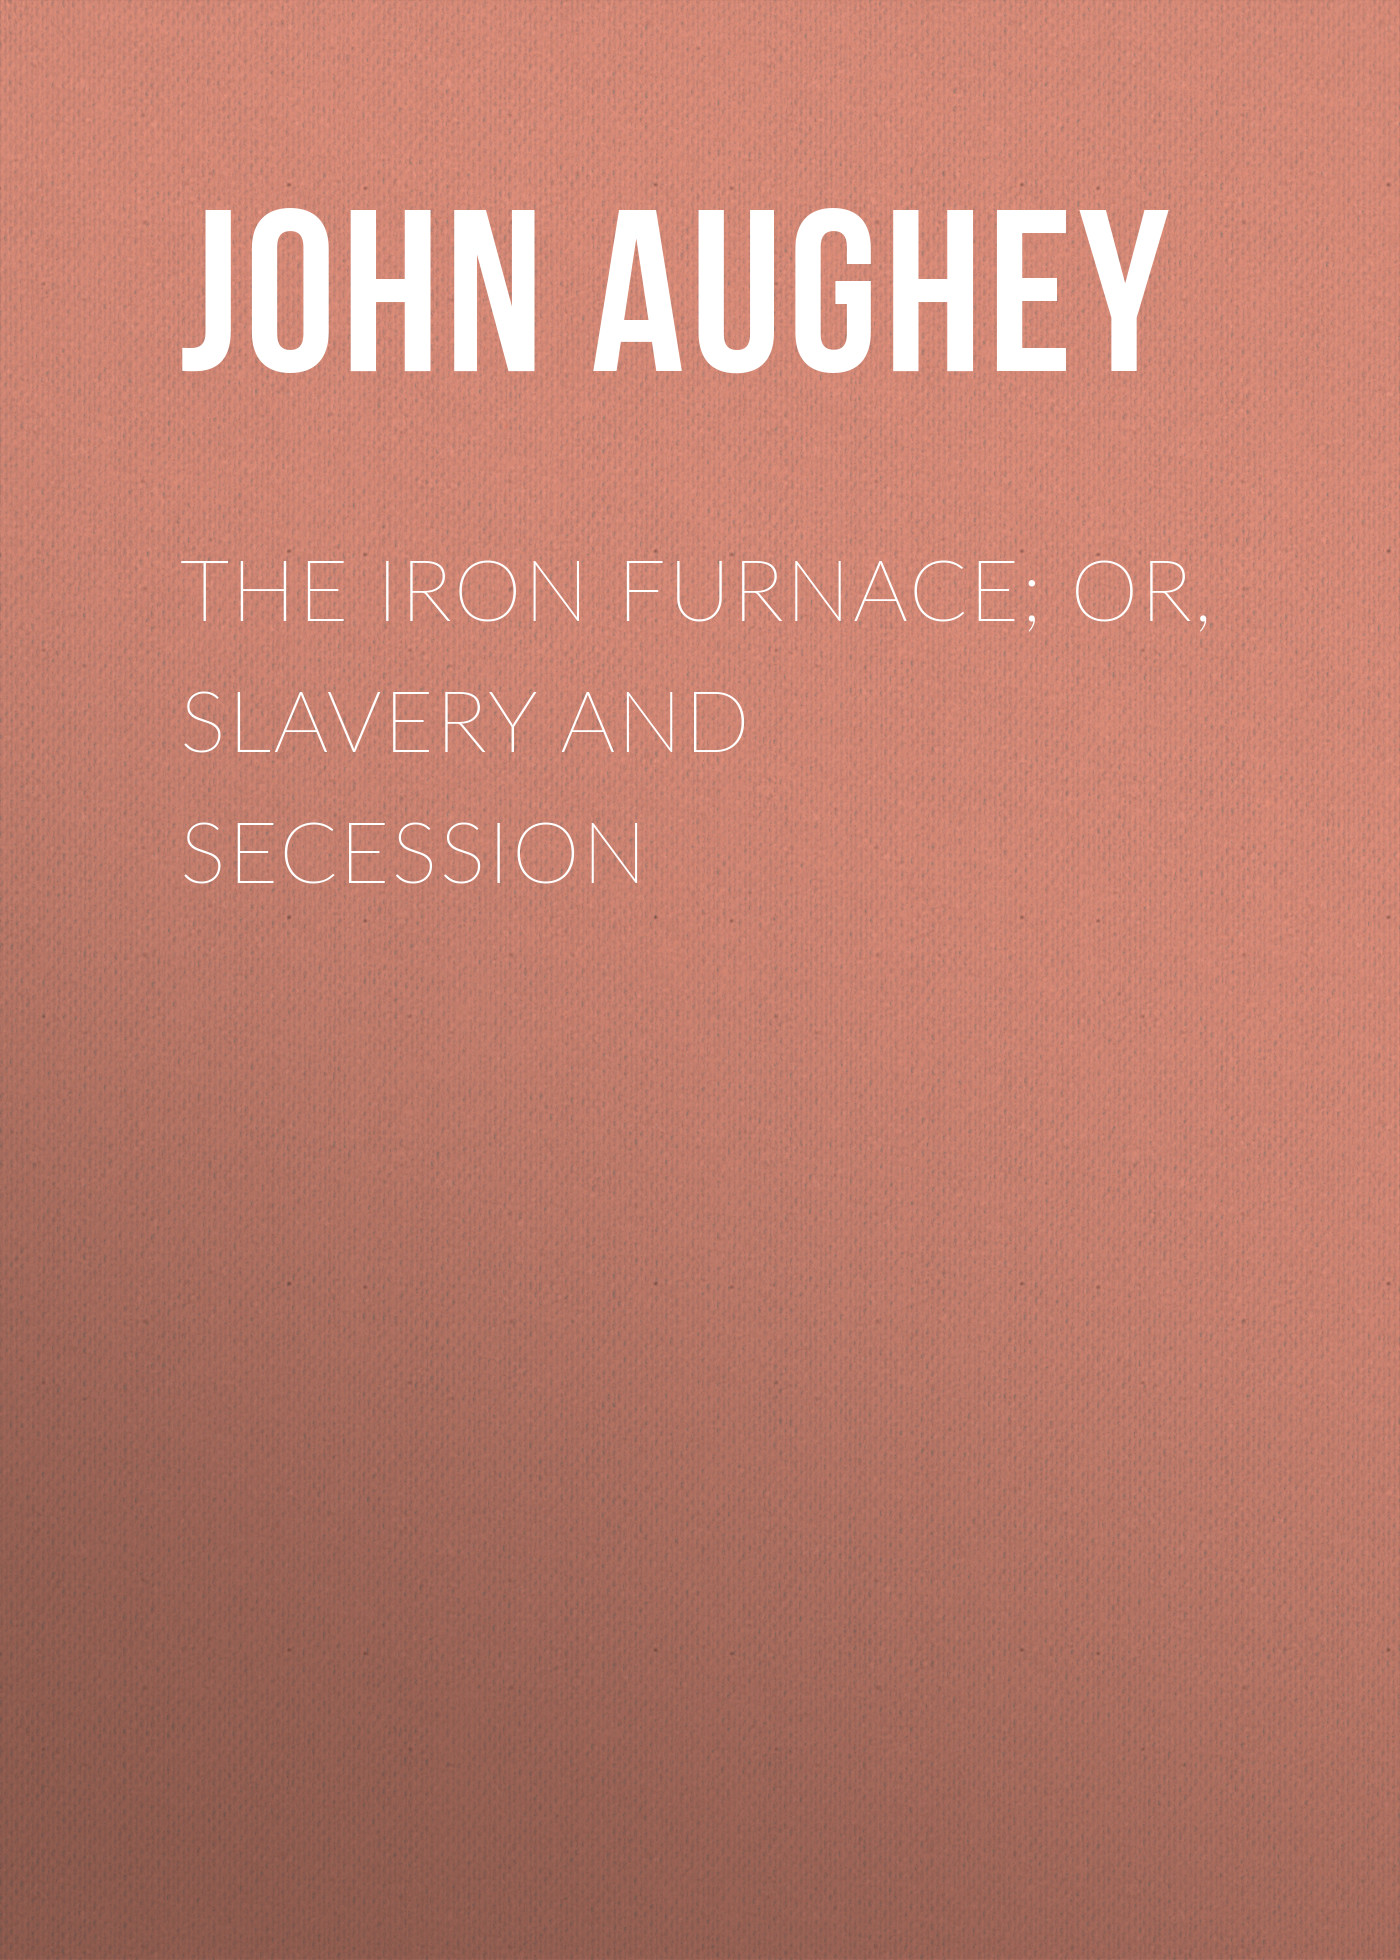 Aughey John Hill The Iron Furnace; or, Slavery and Secession jc de castelbajac поло